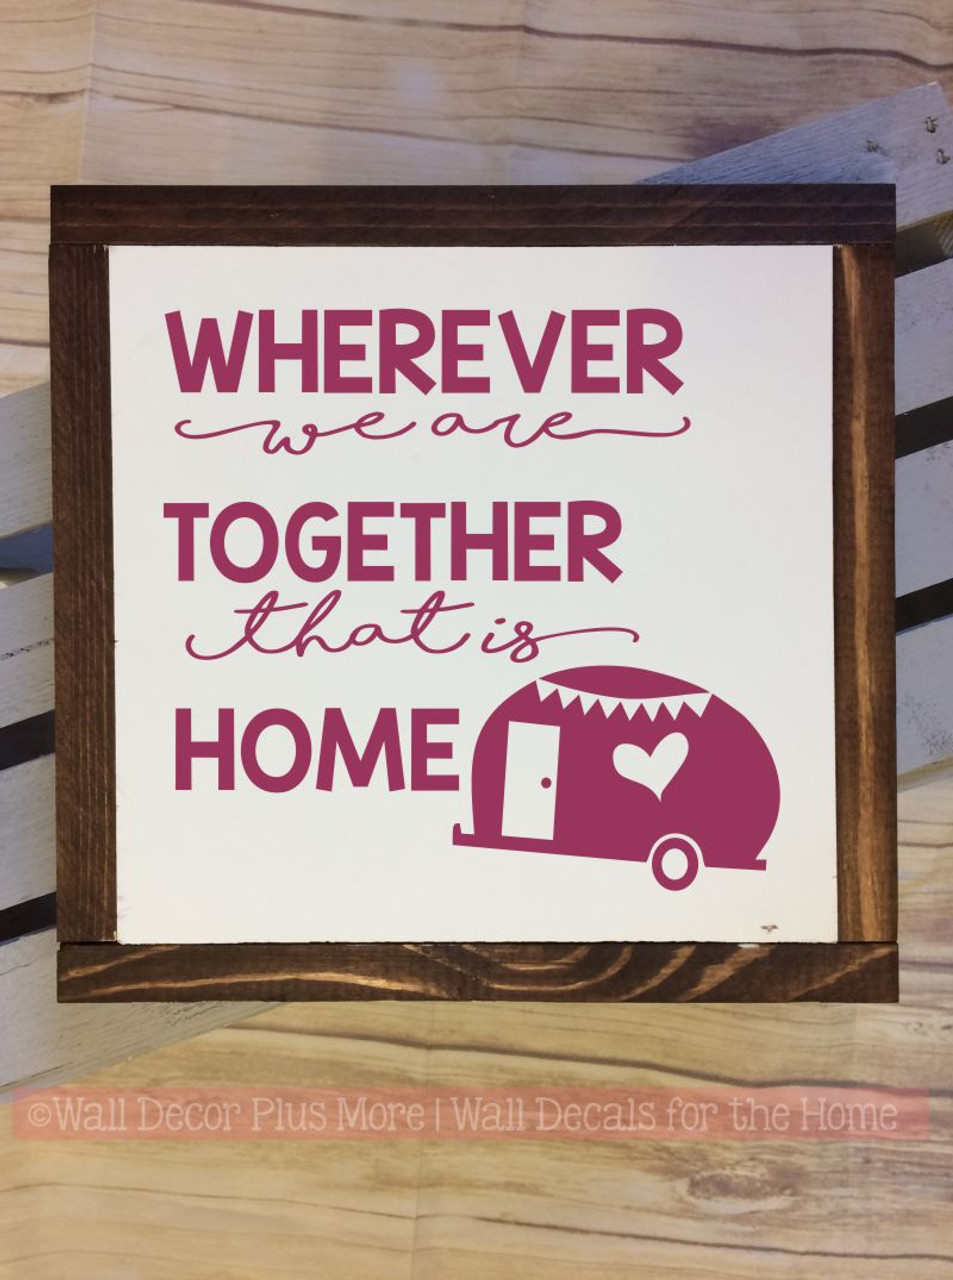 Wherever We Are Together Is Home Camper Wood Sign Metal With Quote Hanging Wall Art 3 Sign Choices Wall Decor Plus More